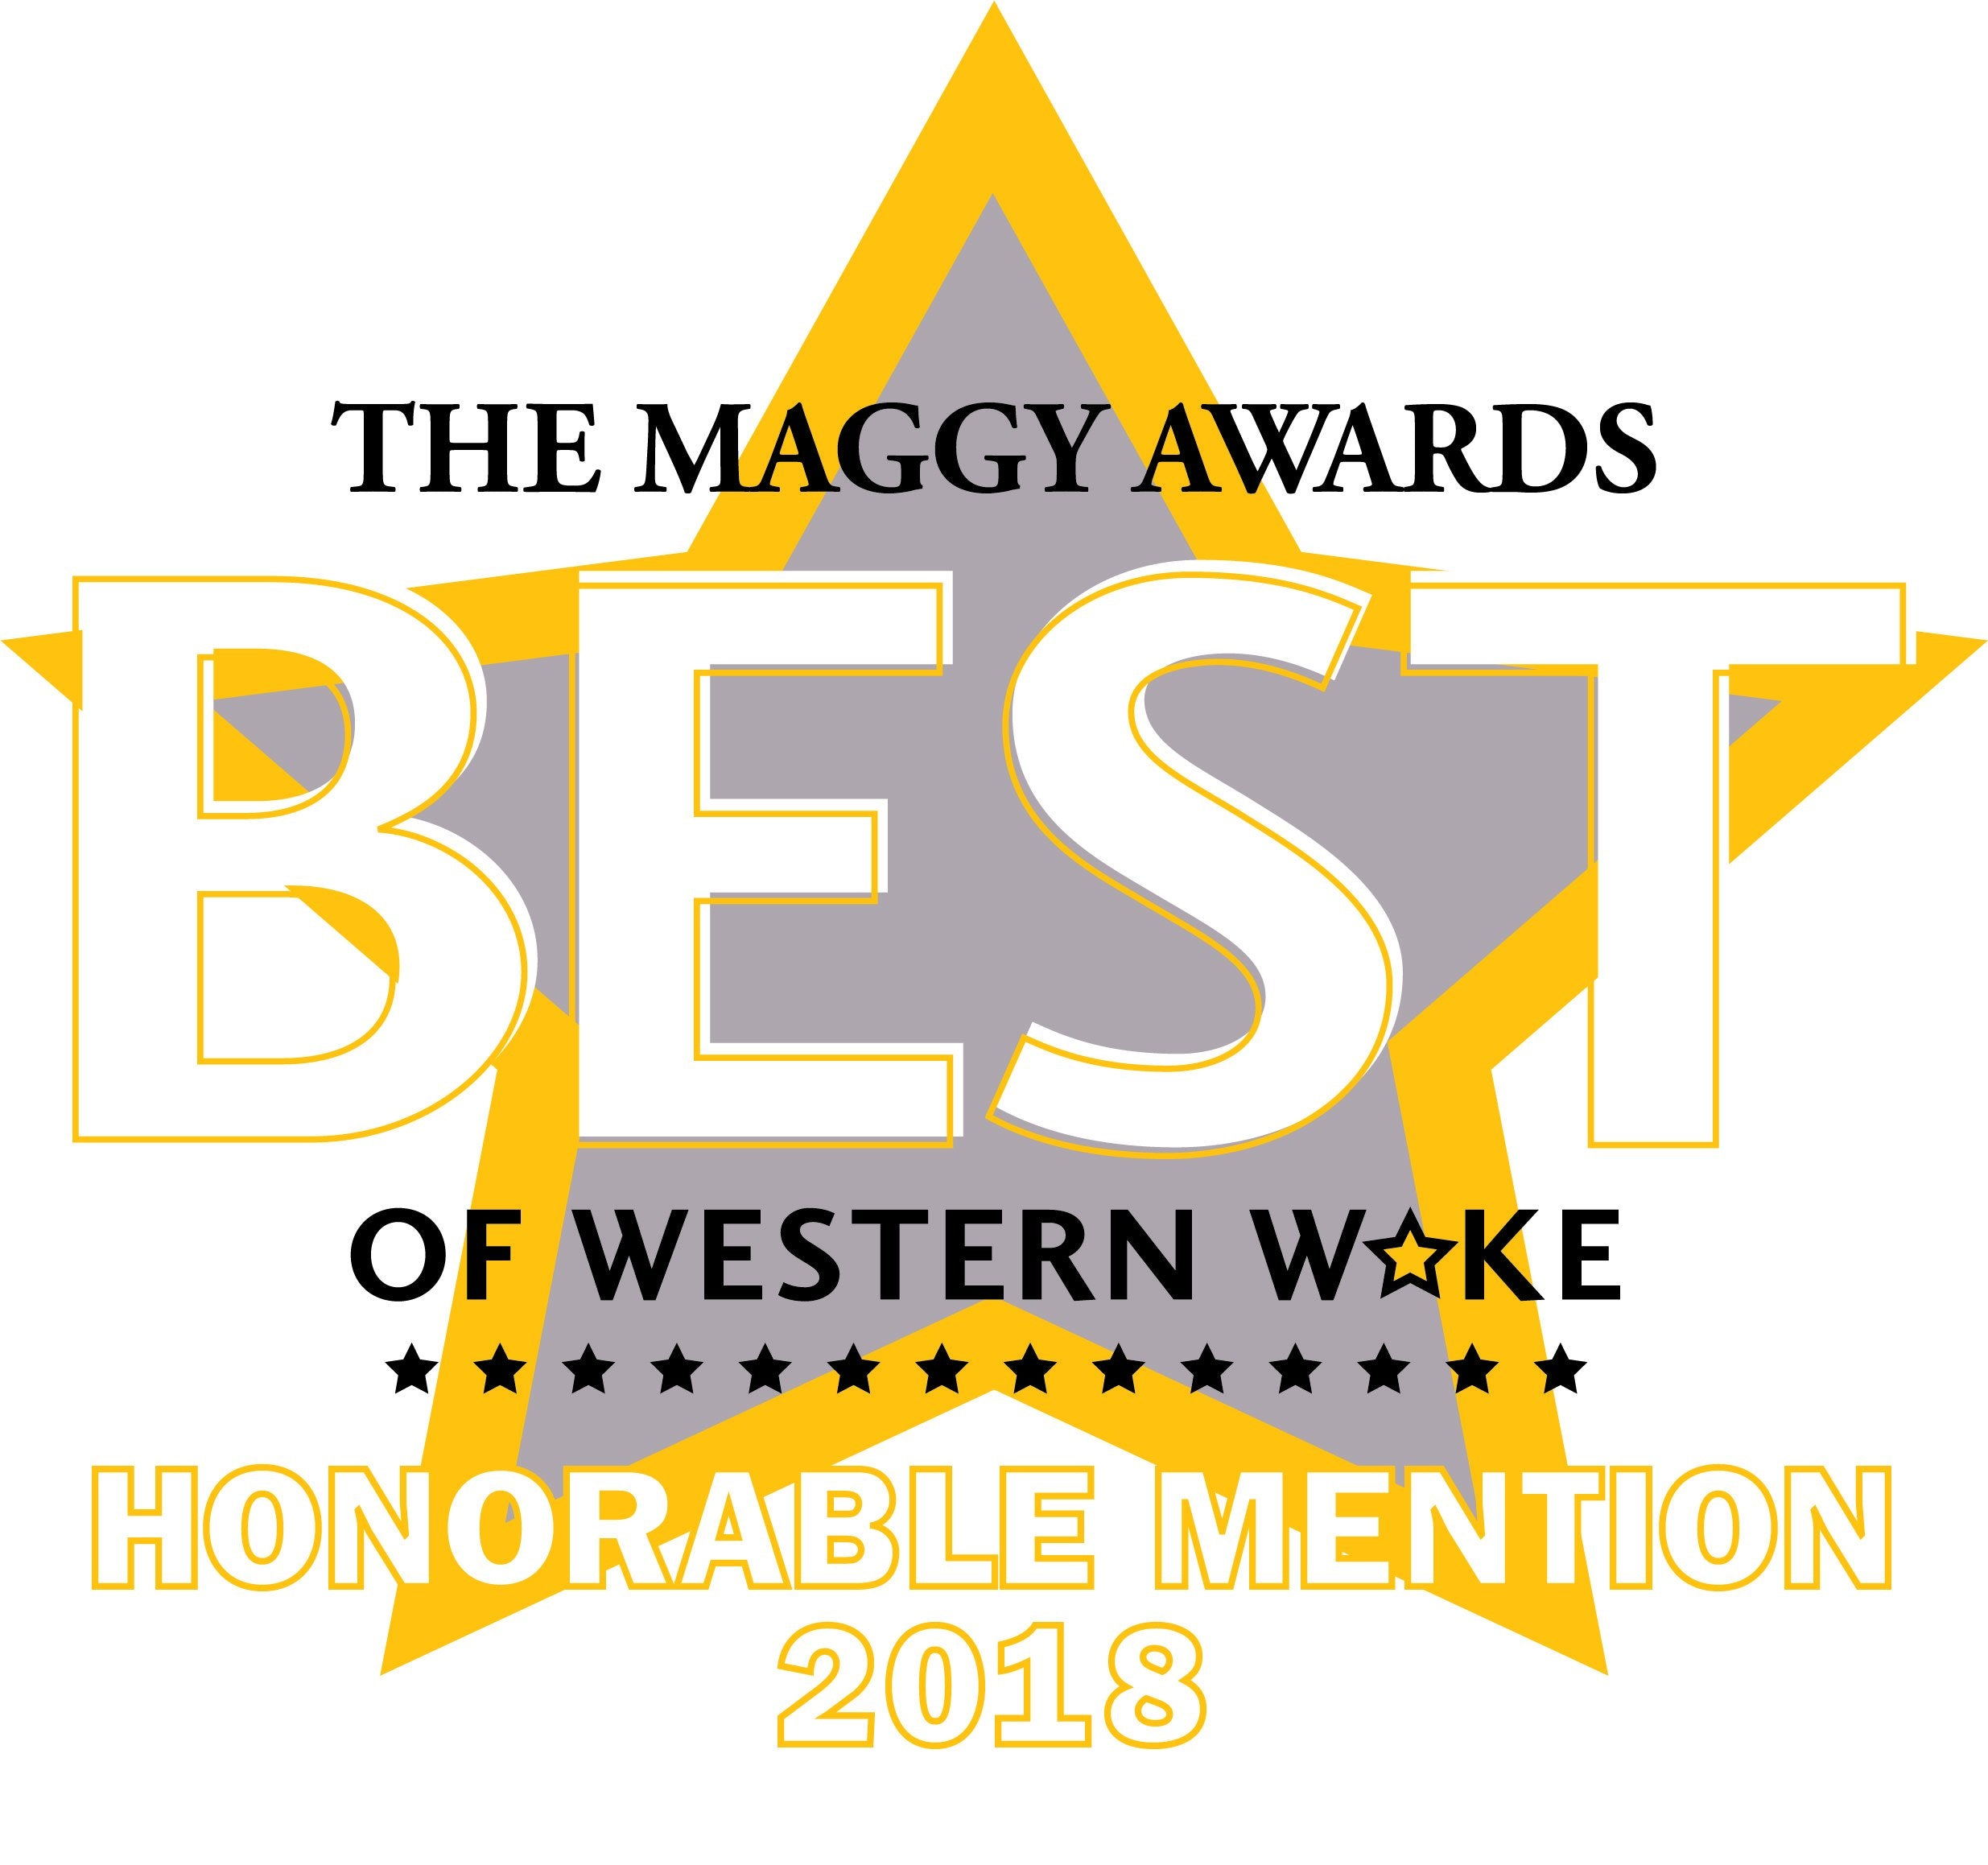 The Maggy Awards, Best of Western Honorable Mention